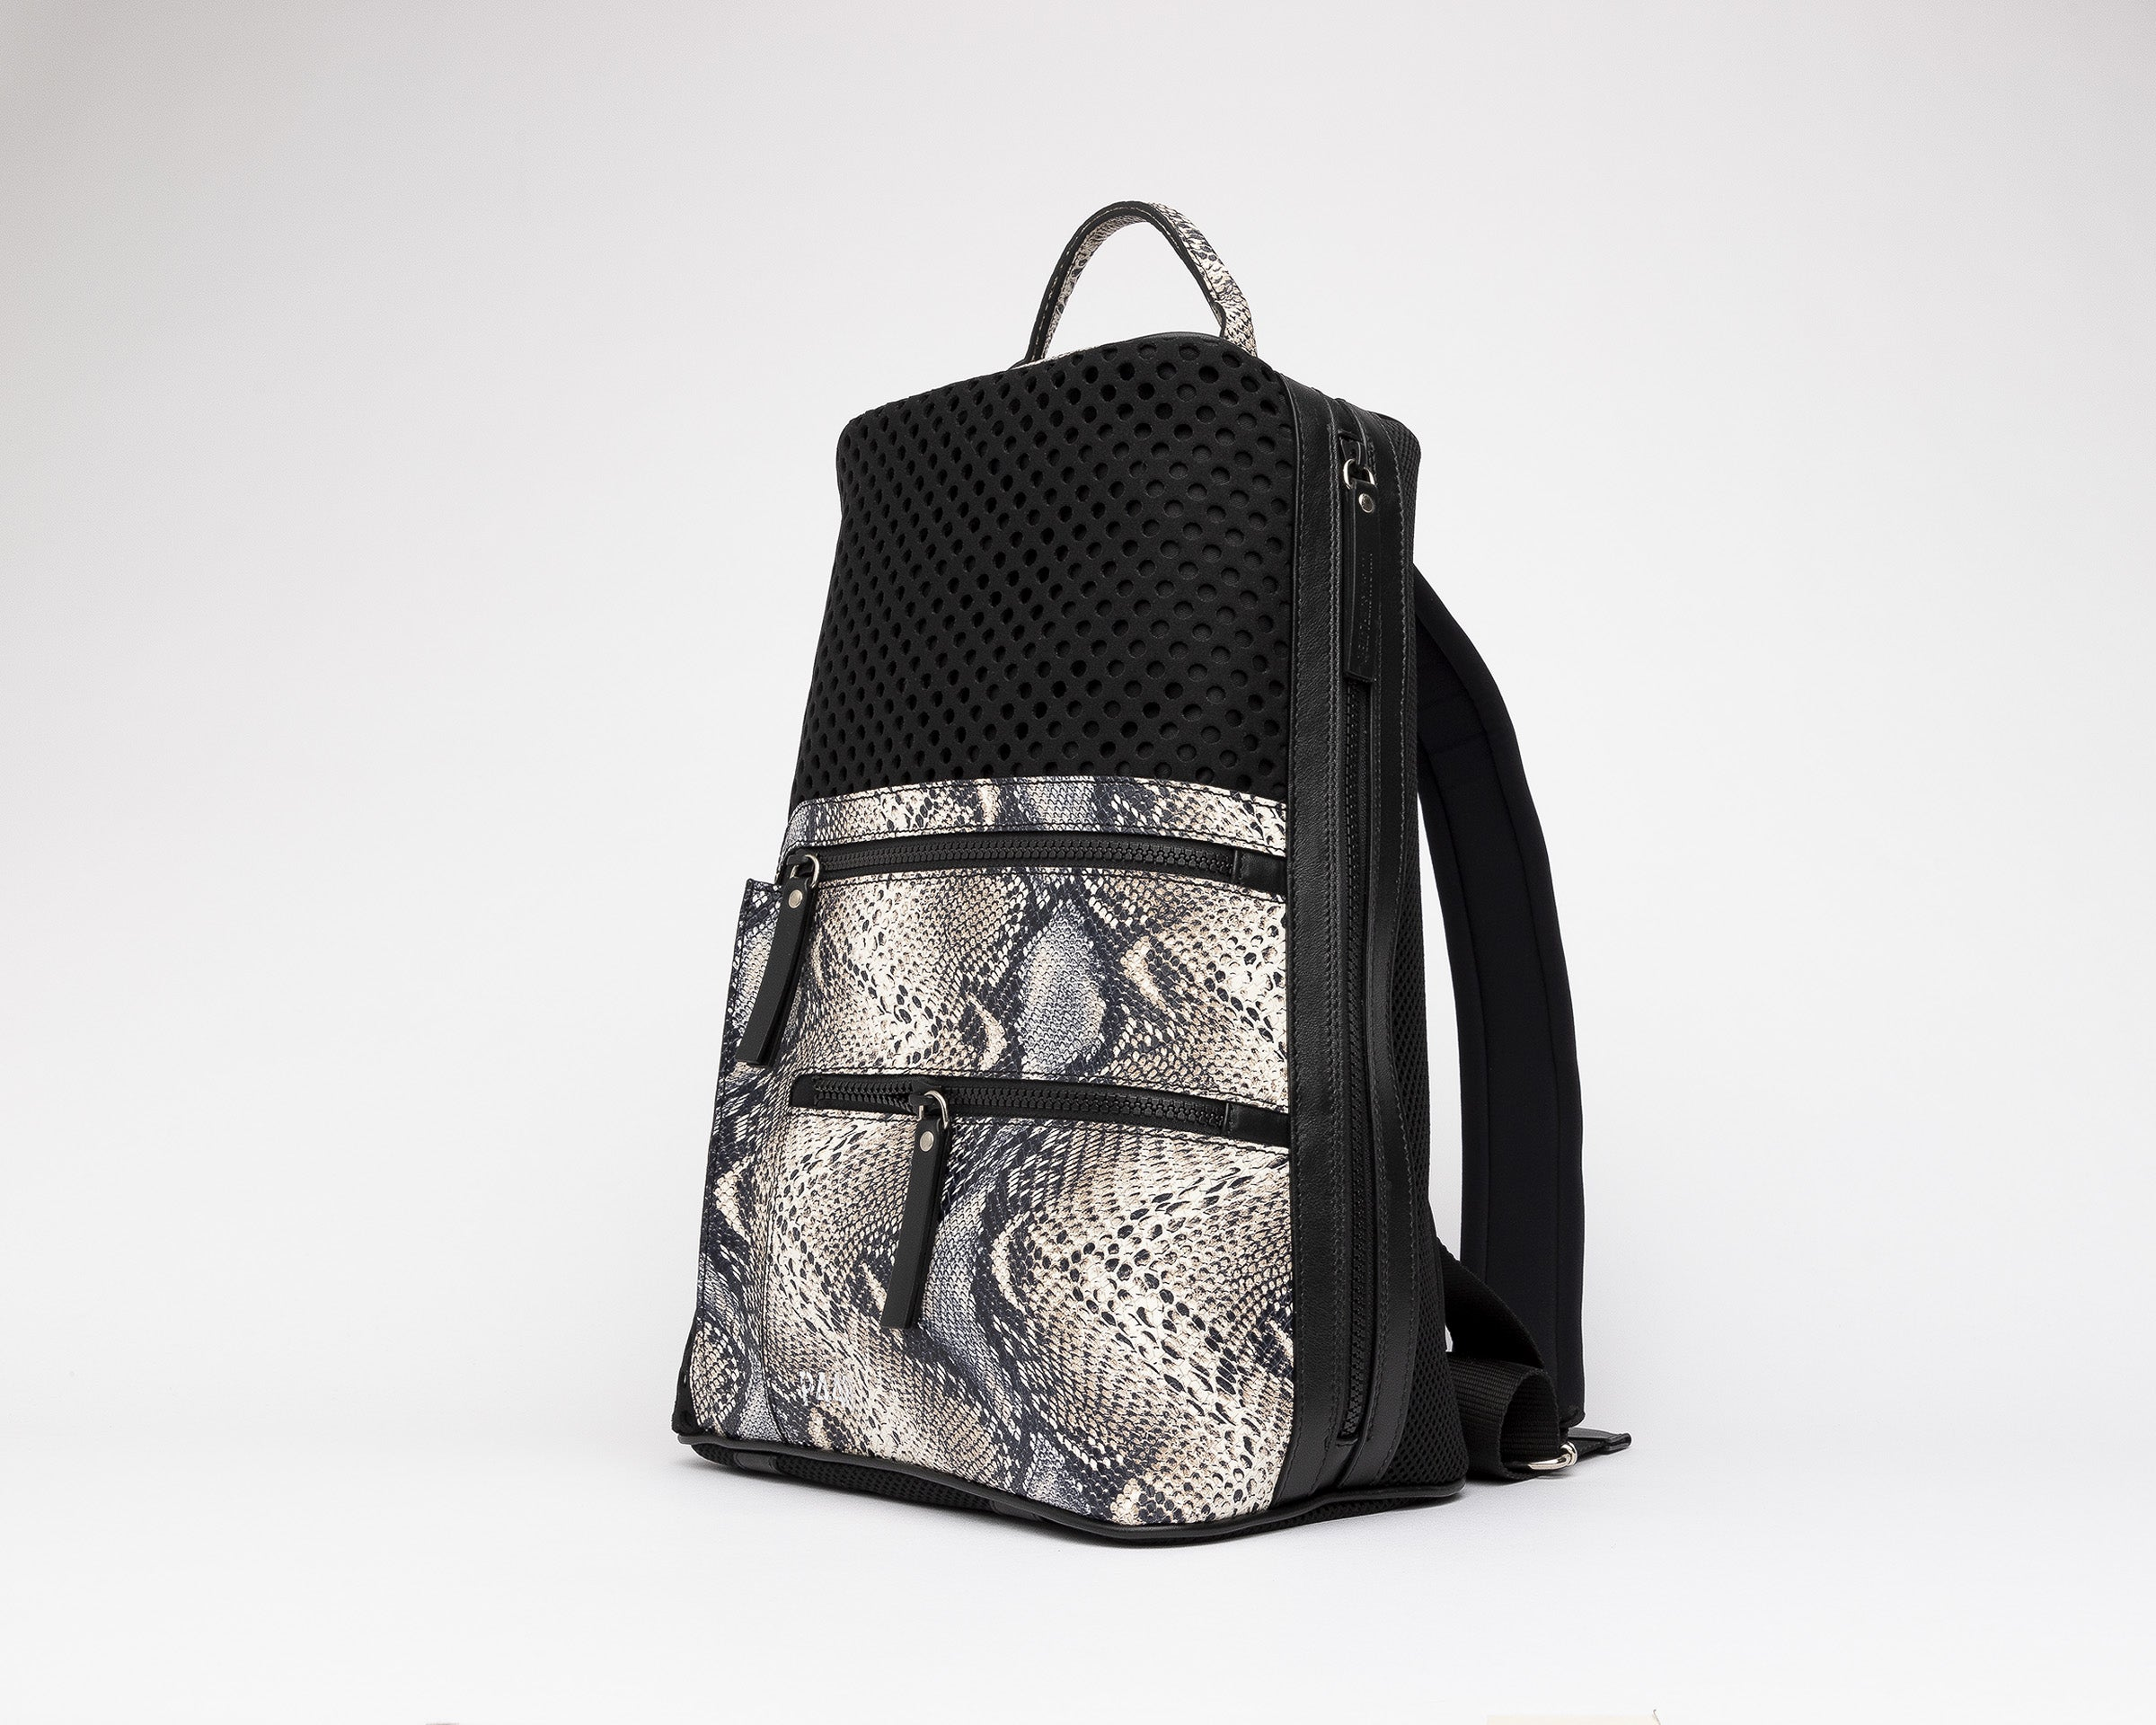 Bill Backpack in Twister Python - Side 2